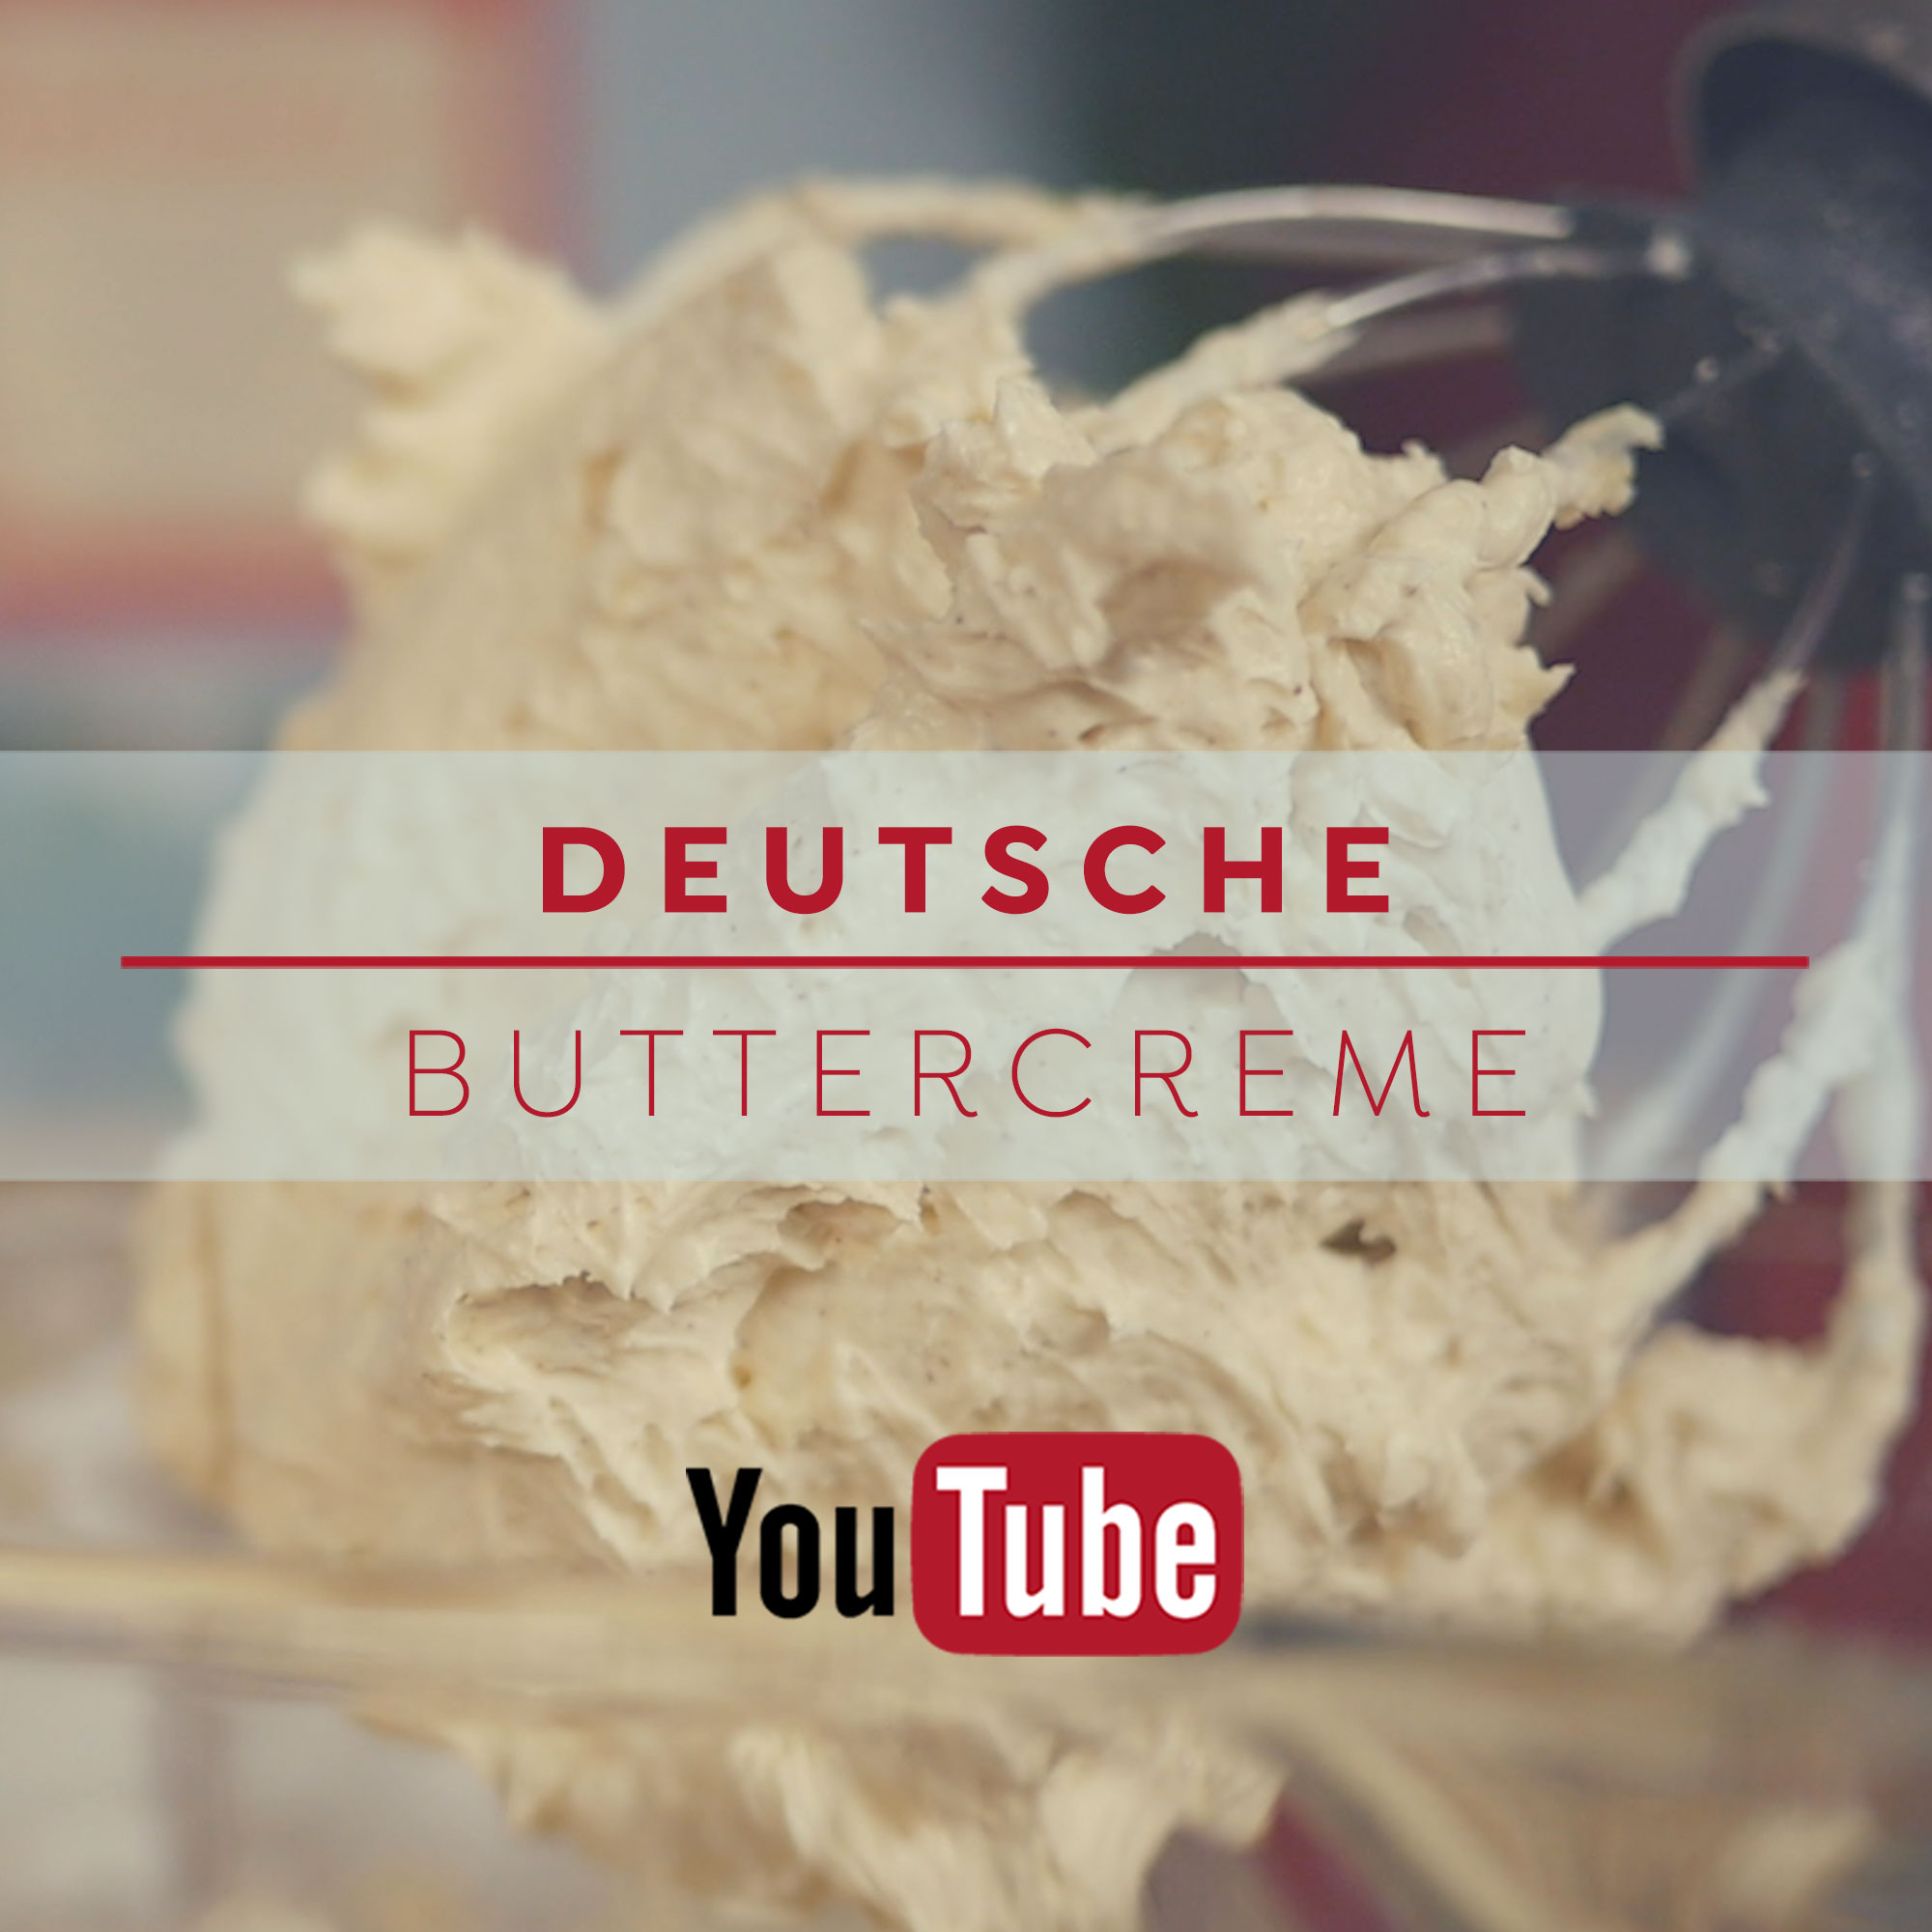 Deutsche Buttercreme Rezept zum YouTube Video